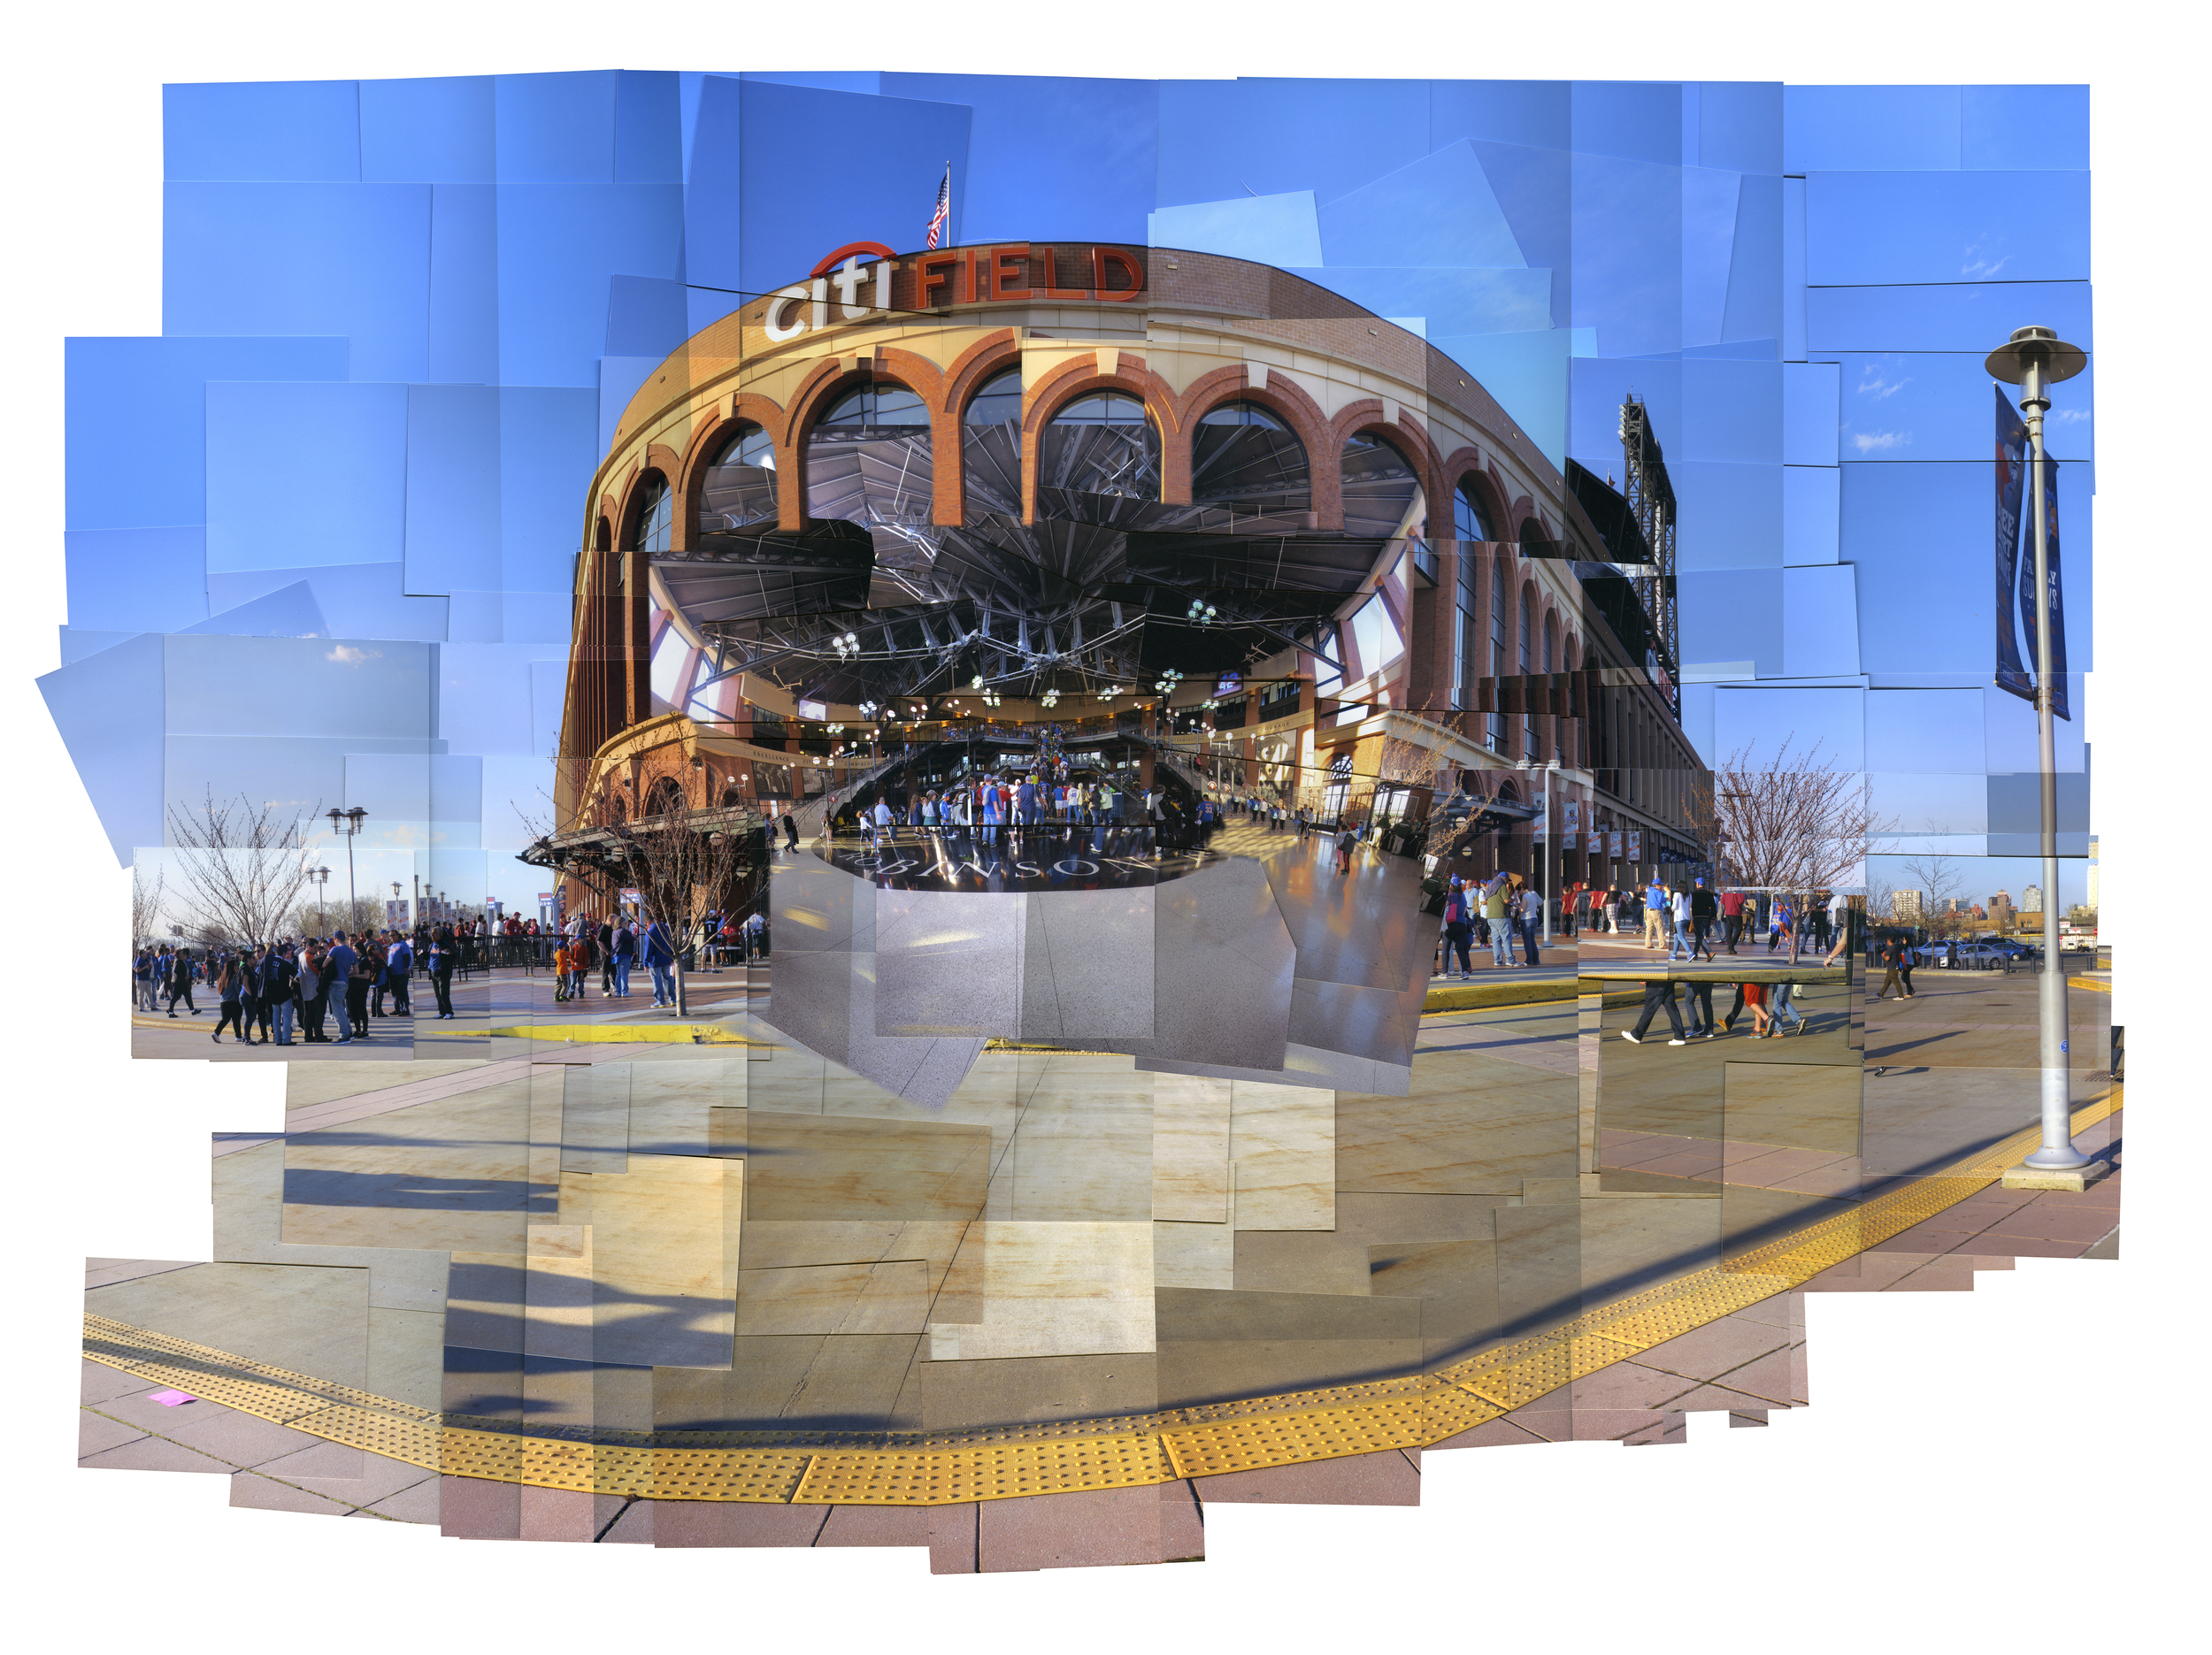 Gemma Lopez, 30 Baseball Stadiums: Citi Field ink jet print, 40 x 30in.